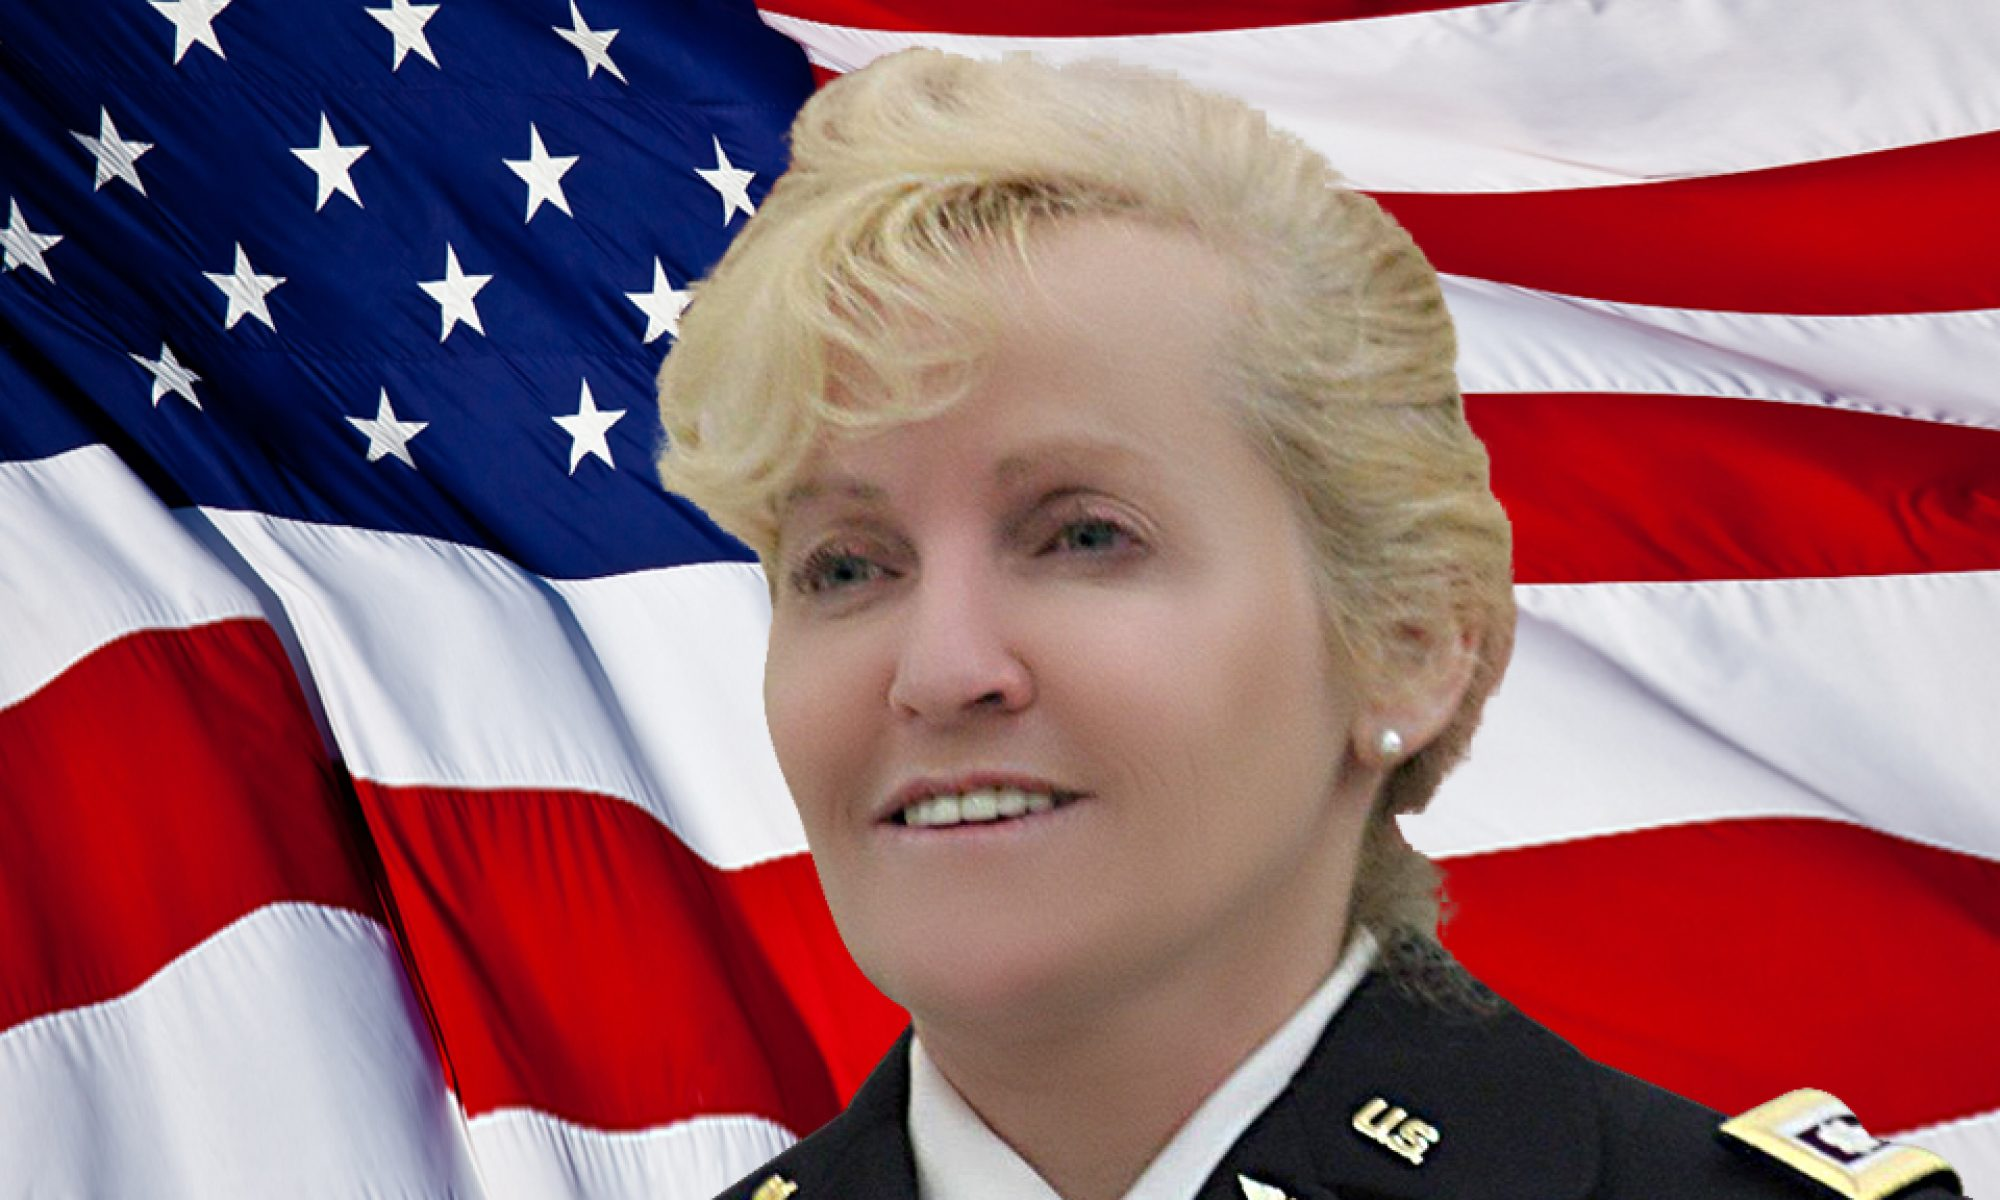 Sherry-Lynn Womack - Christian, Wife, Mother, Soldier, Patriot, Public Servant